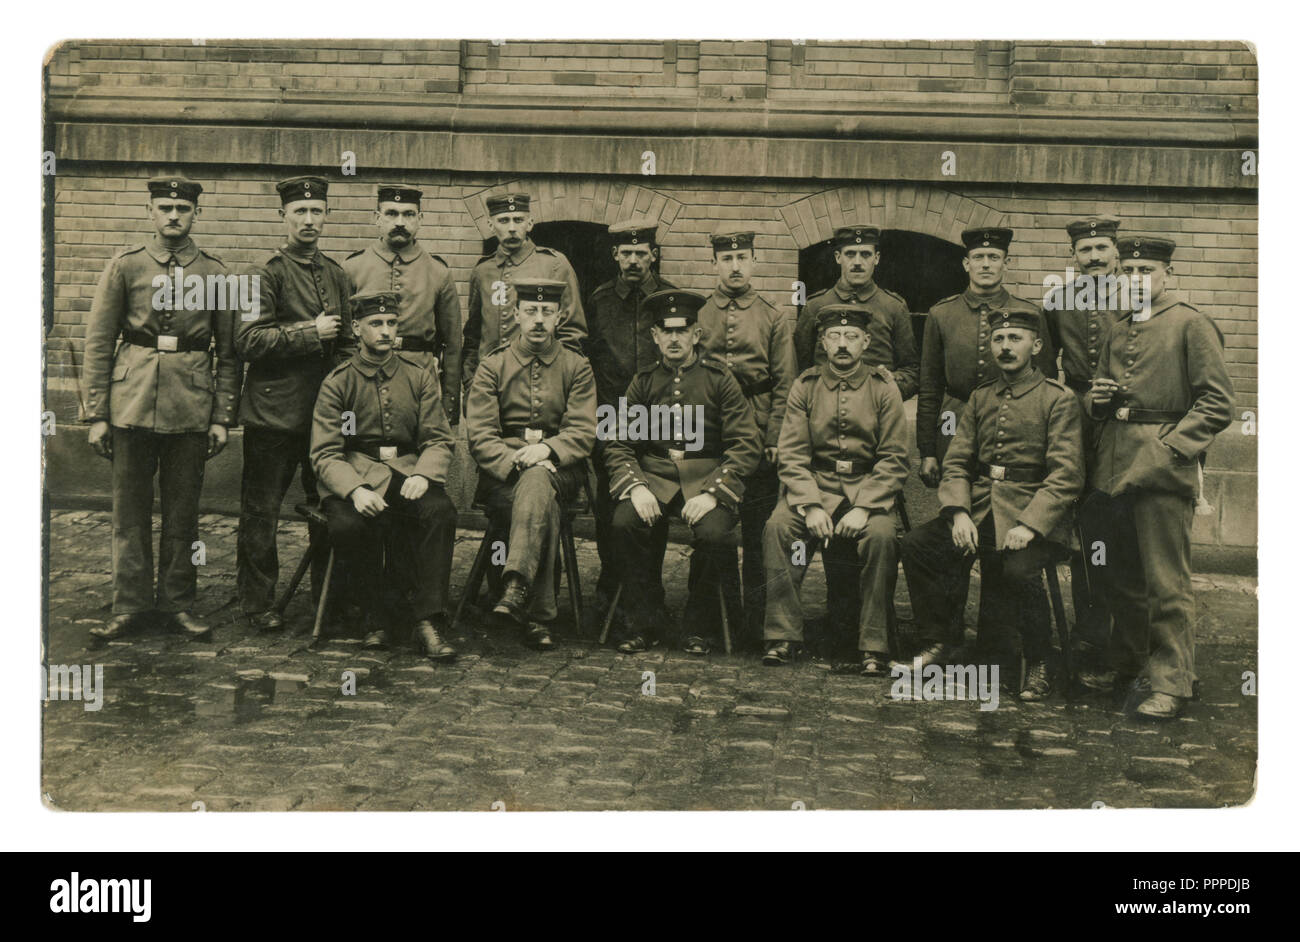 German historical photo: group portrait of a military unit, the soldiers and the officer smoke cigarettes, against a brick wall. world war one 1914-18 - Stock Image